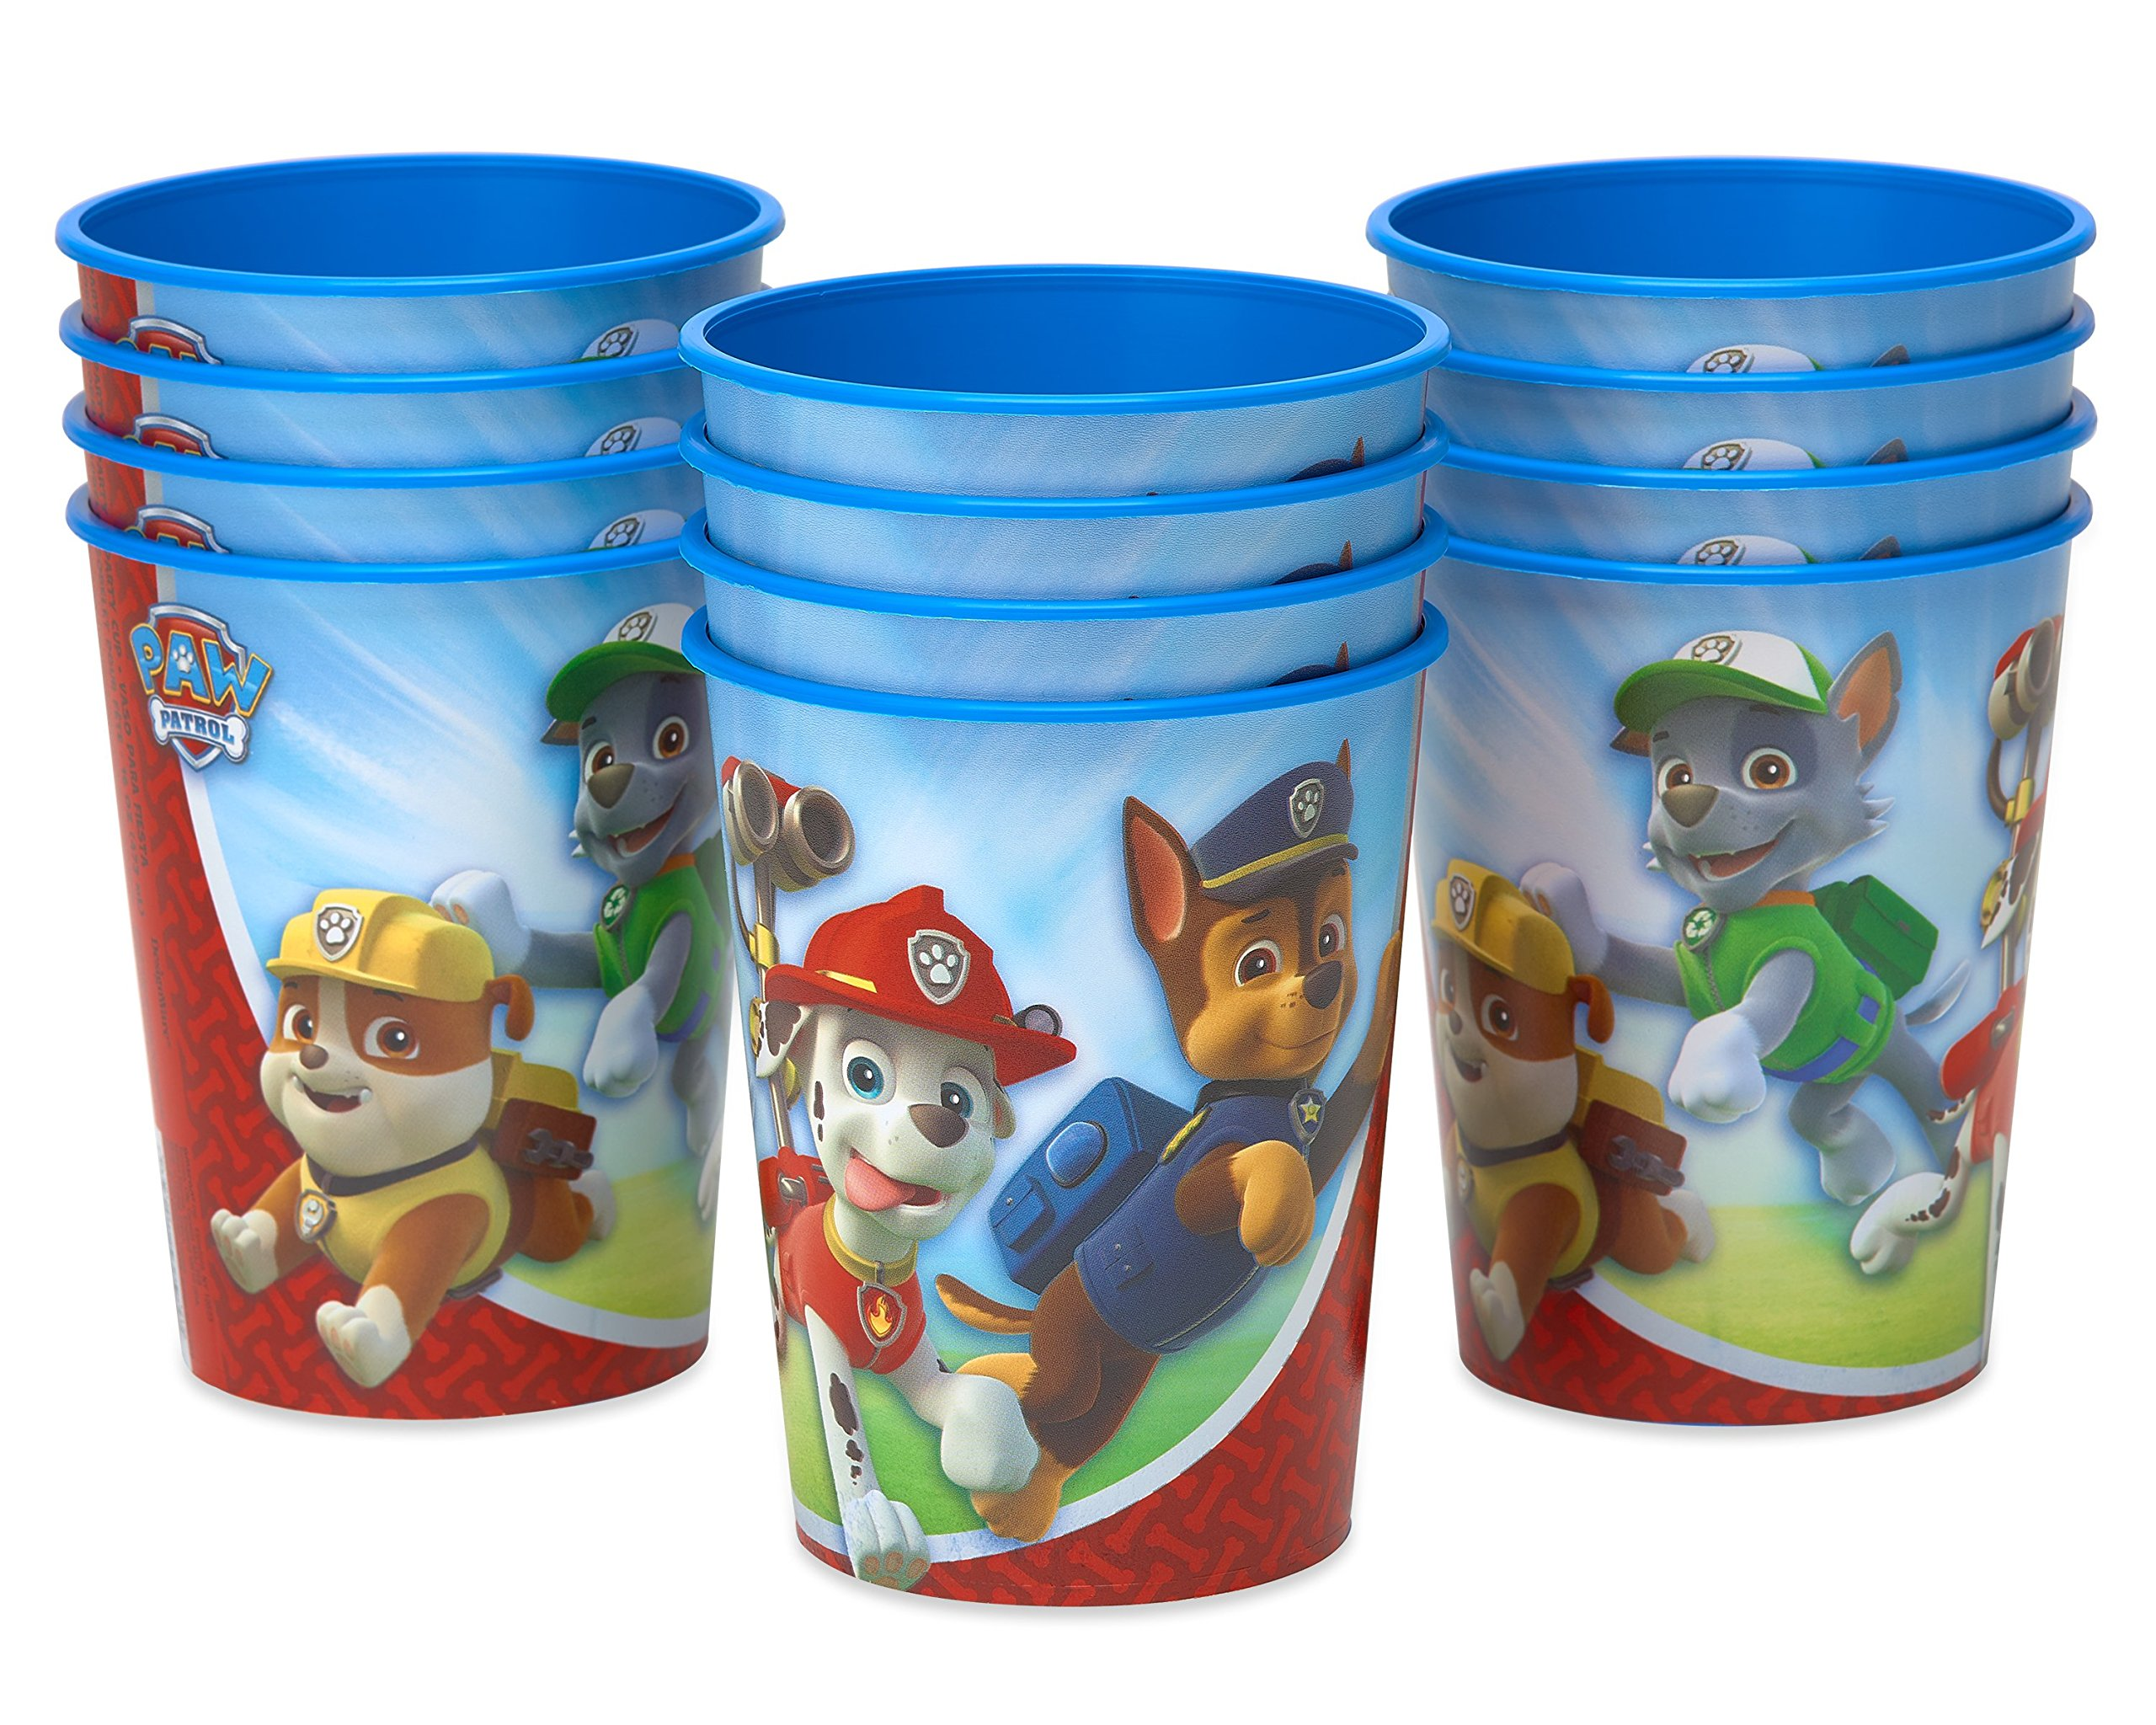 Nickelodeon American Greetings PAW Patrol Plastic Party Cups (12 Count), 16 oz